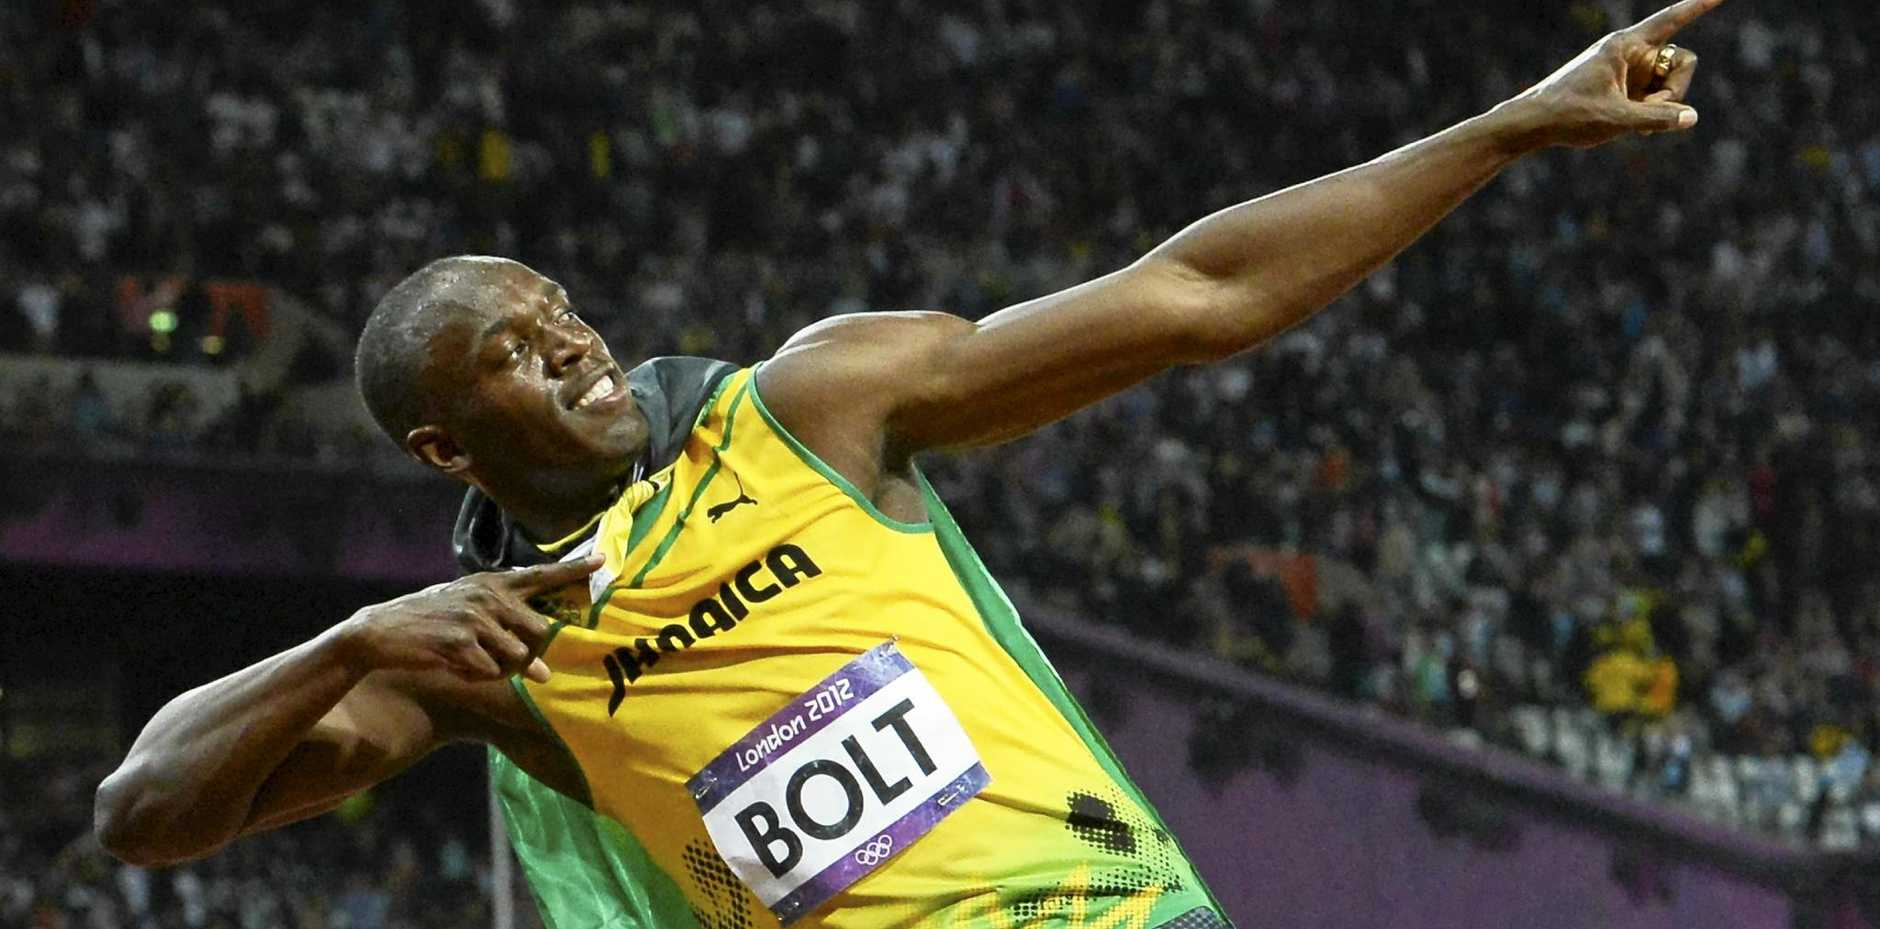 SPEED MACHINE: Jamaica's Usain Bolt in his trademark pose after winning the 100m at the 2012 Olympics.